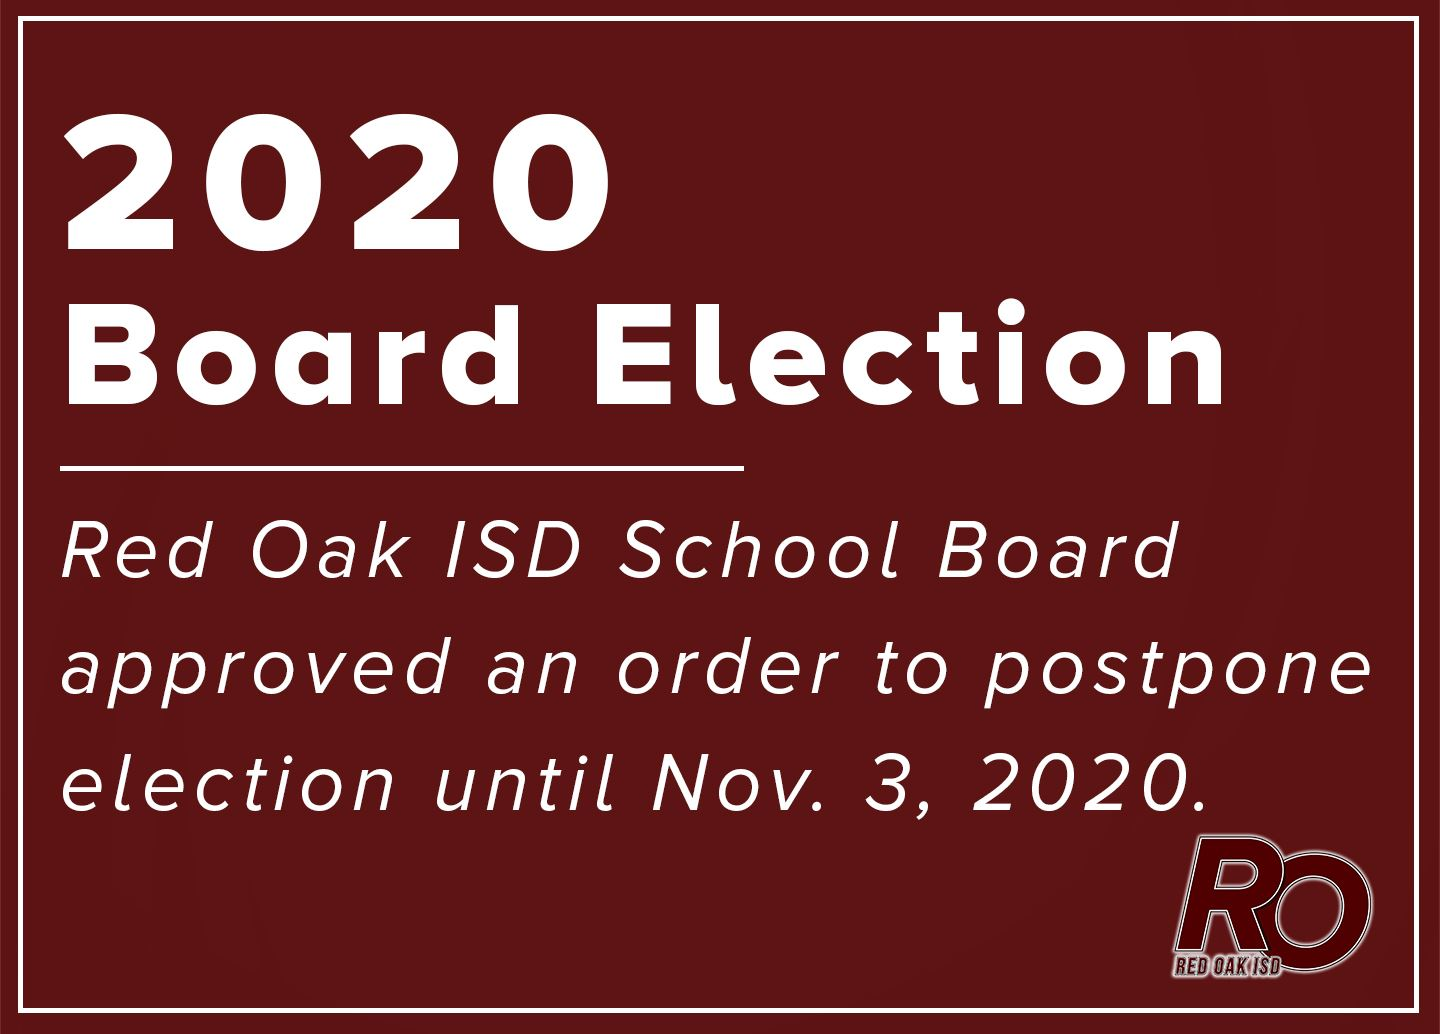 2020 Board Election: ROISD School Board approved an order to postpone election until Nov. 3, 2020